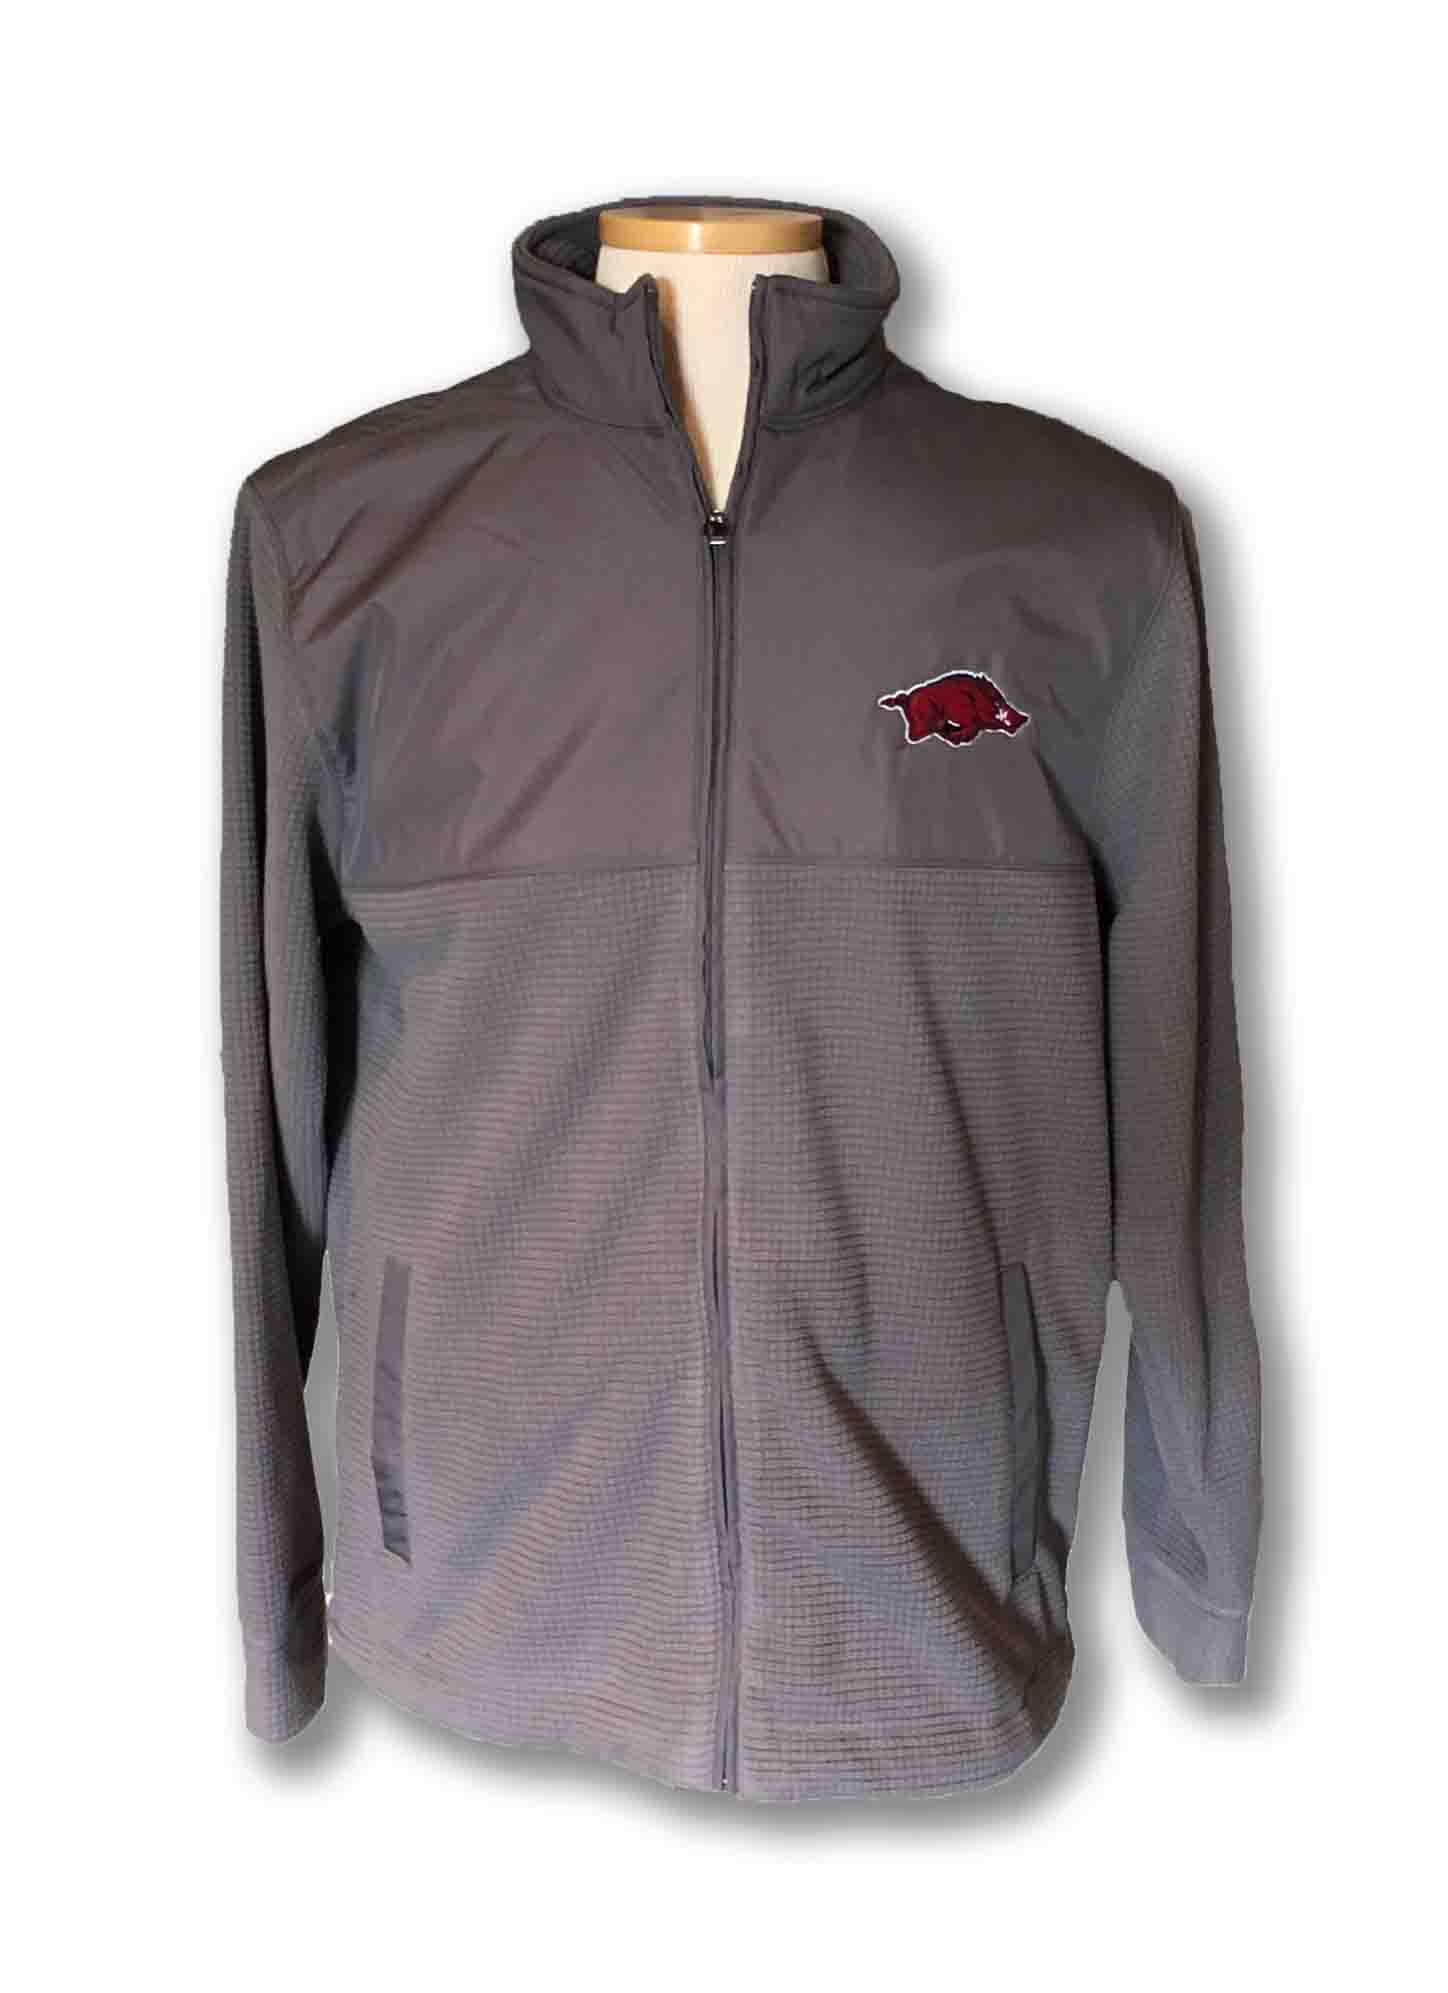 Razorback Grey Jacket